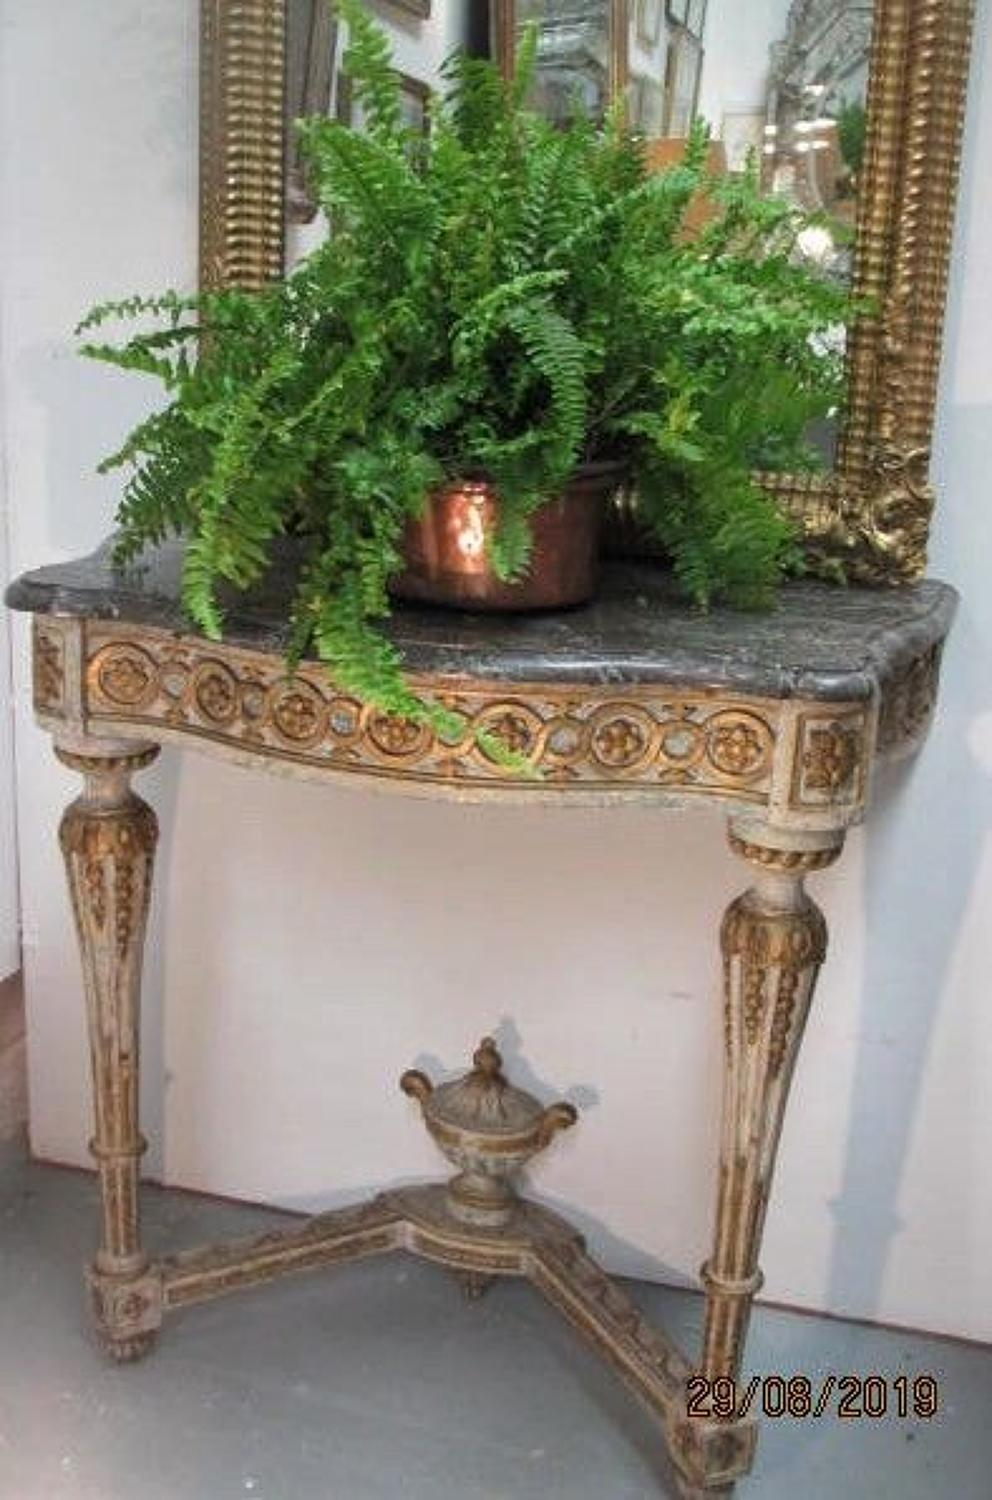 18th century French provincial console table